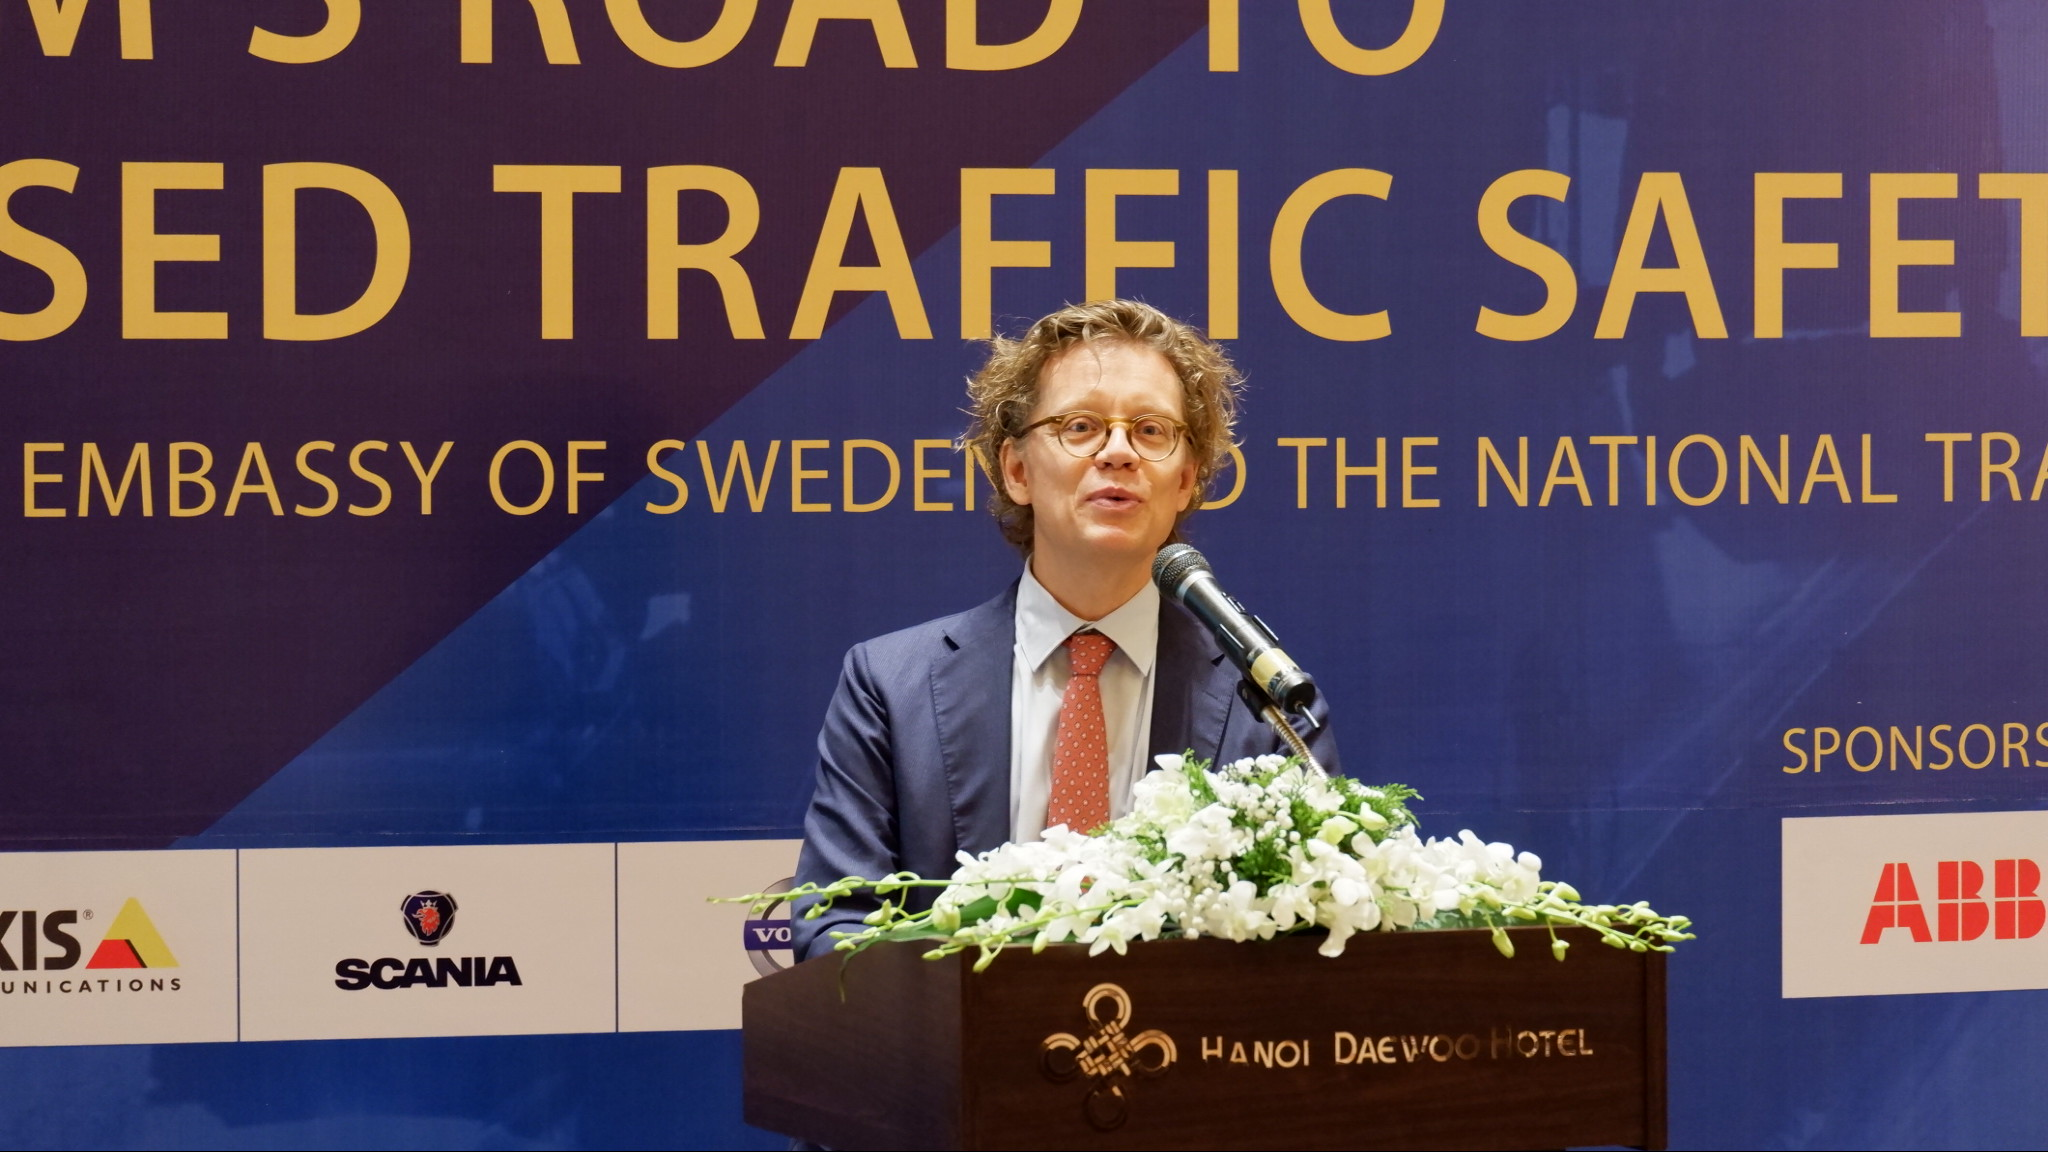 Sweden offers suggestions to Vietnam for traffic safety